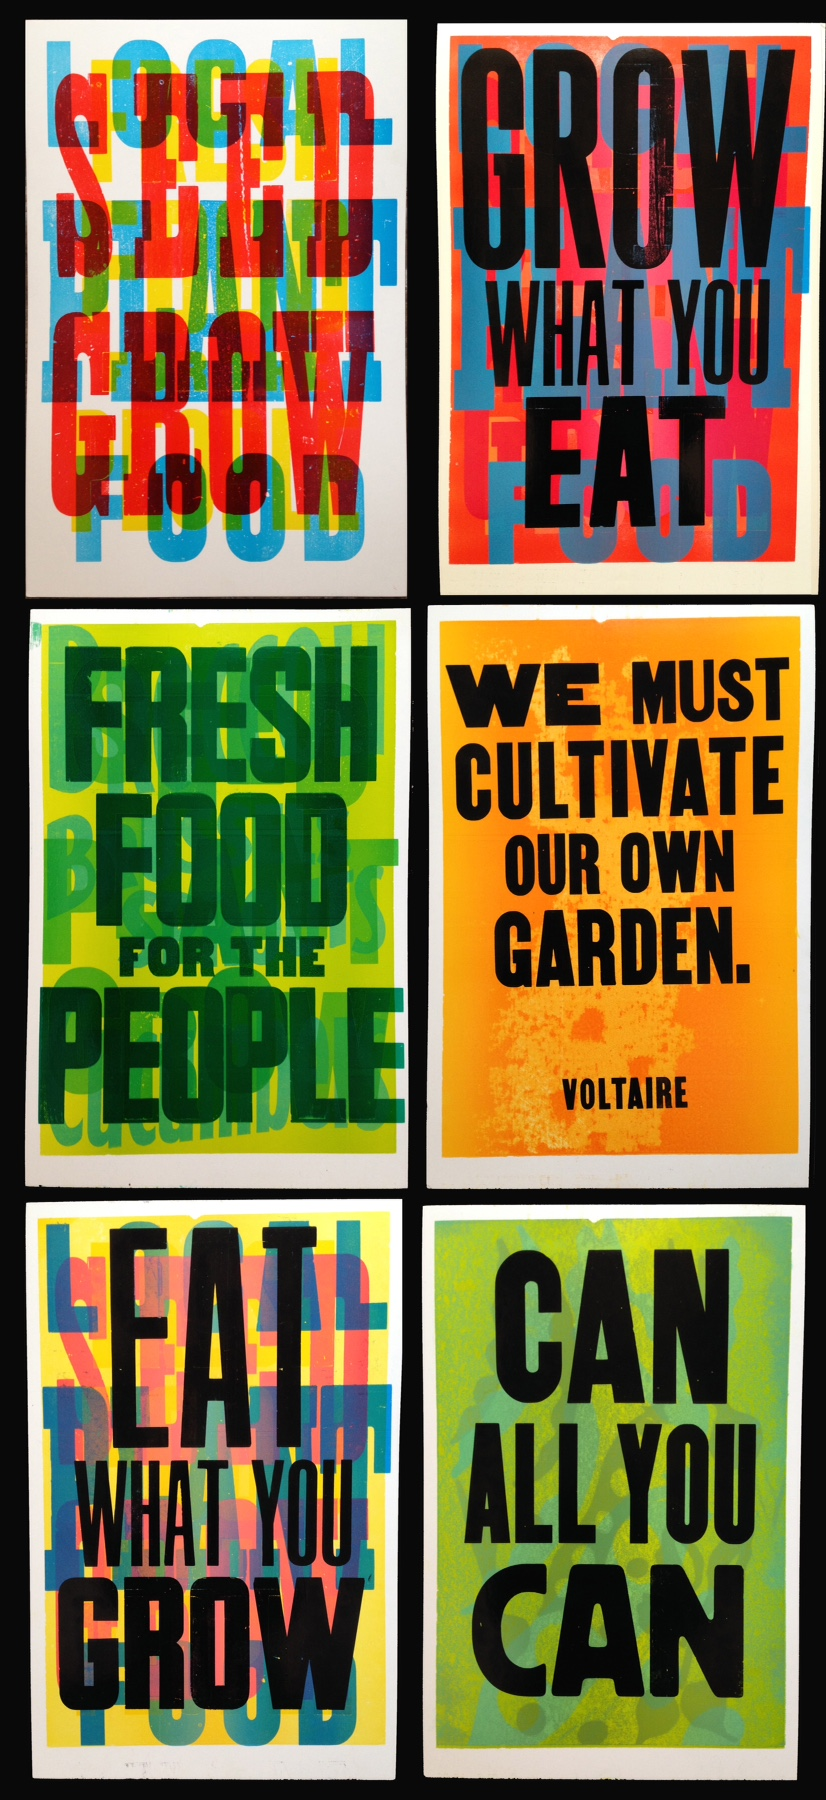 food justice series prints